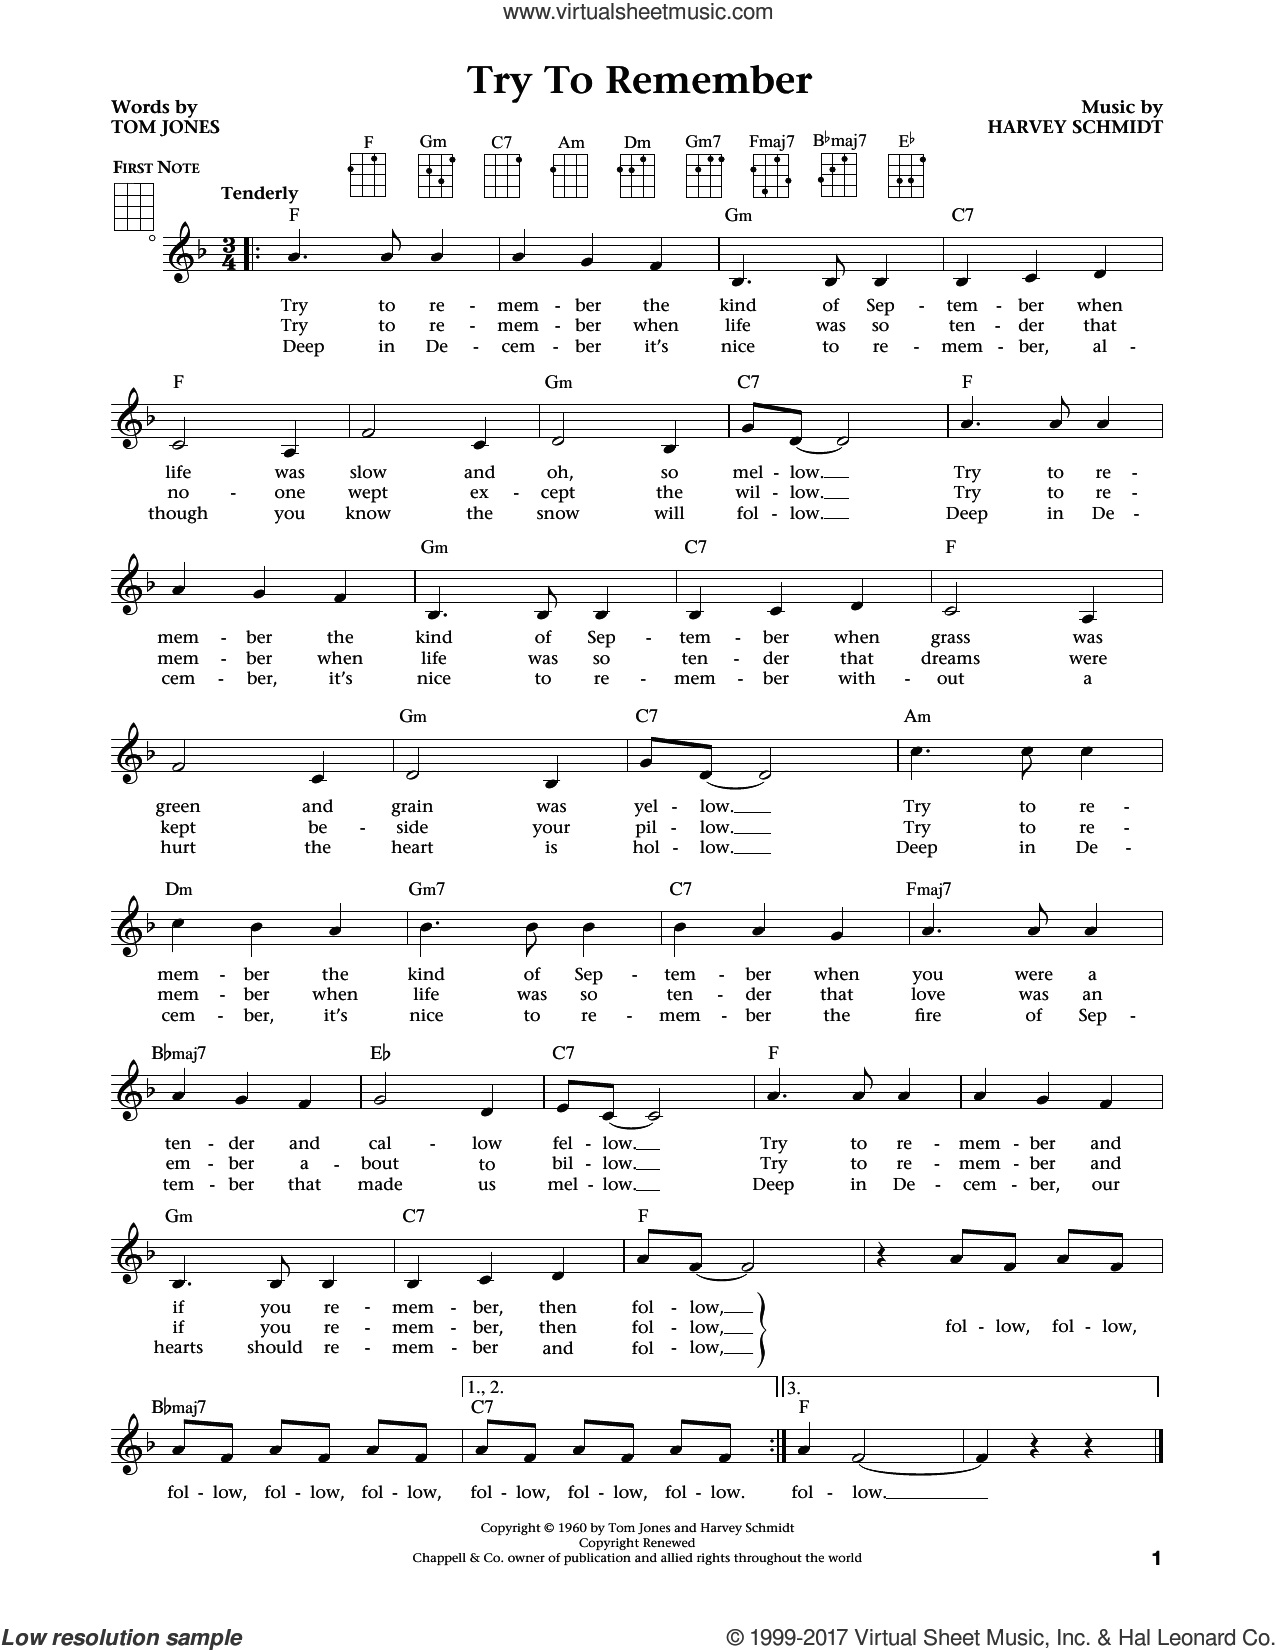 Try To Remember (from The Daily Ukulele) (arr. Liz and Jim Beloff) sheet music for ukulele by Tom Jones, Jim Beloff, Liz Beloff and Harvey Schmidt, intermediate skill level